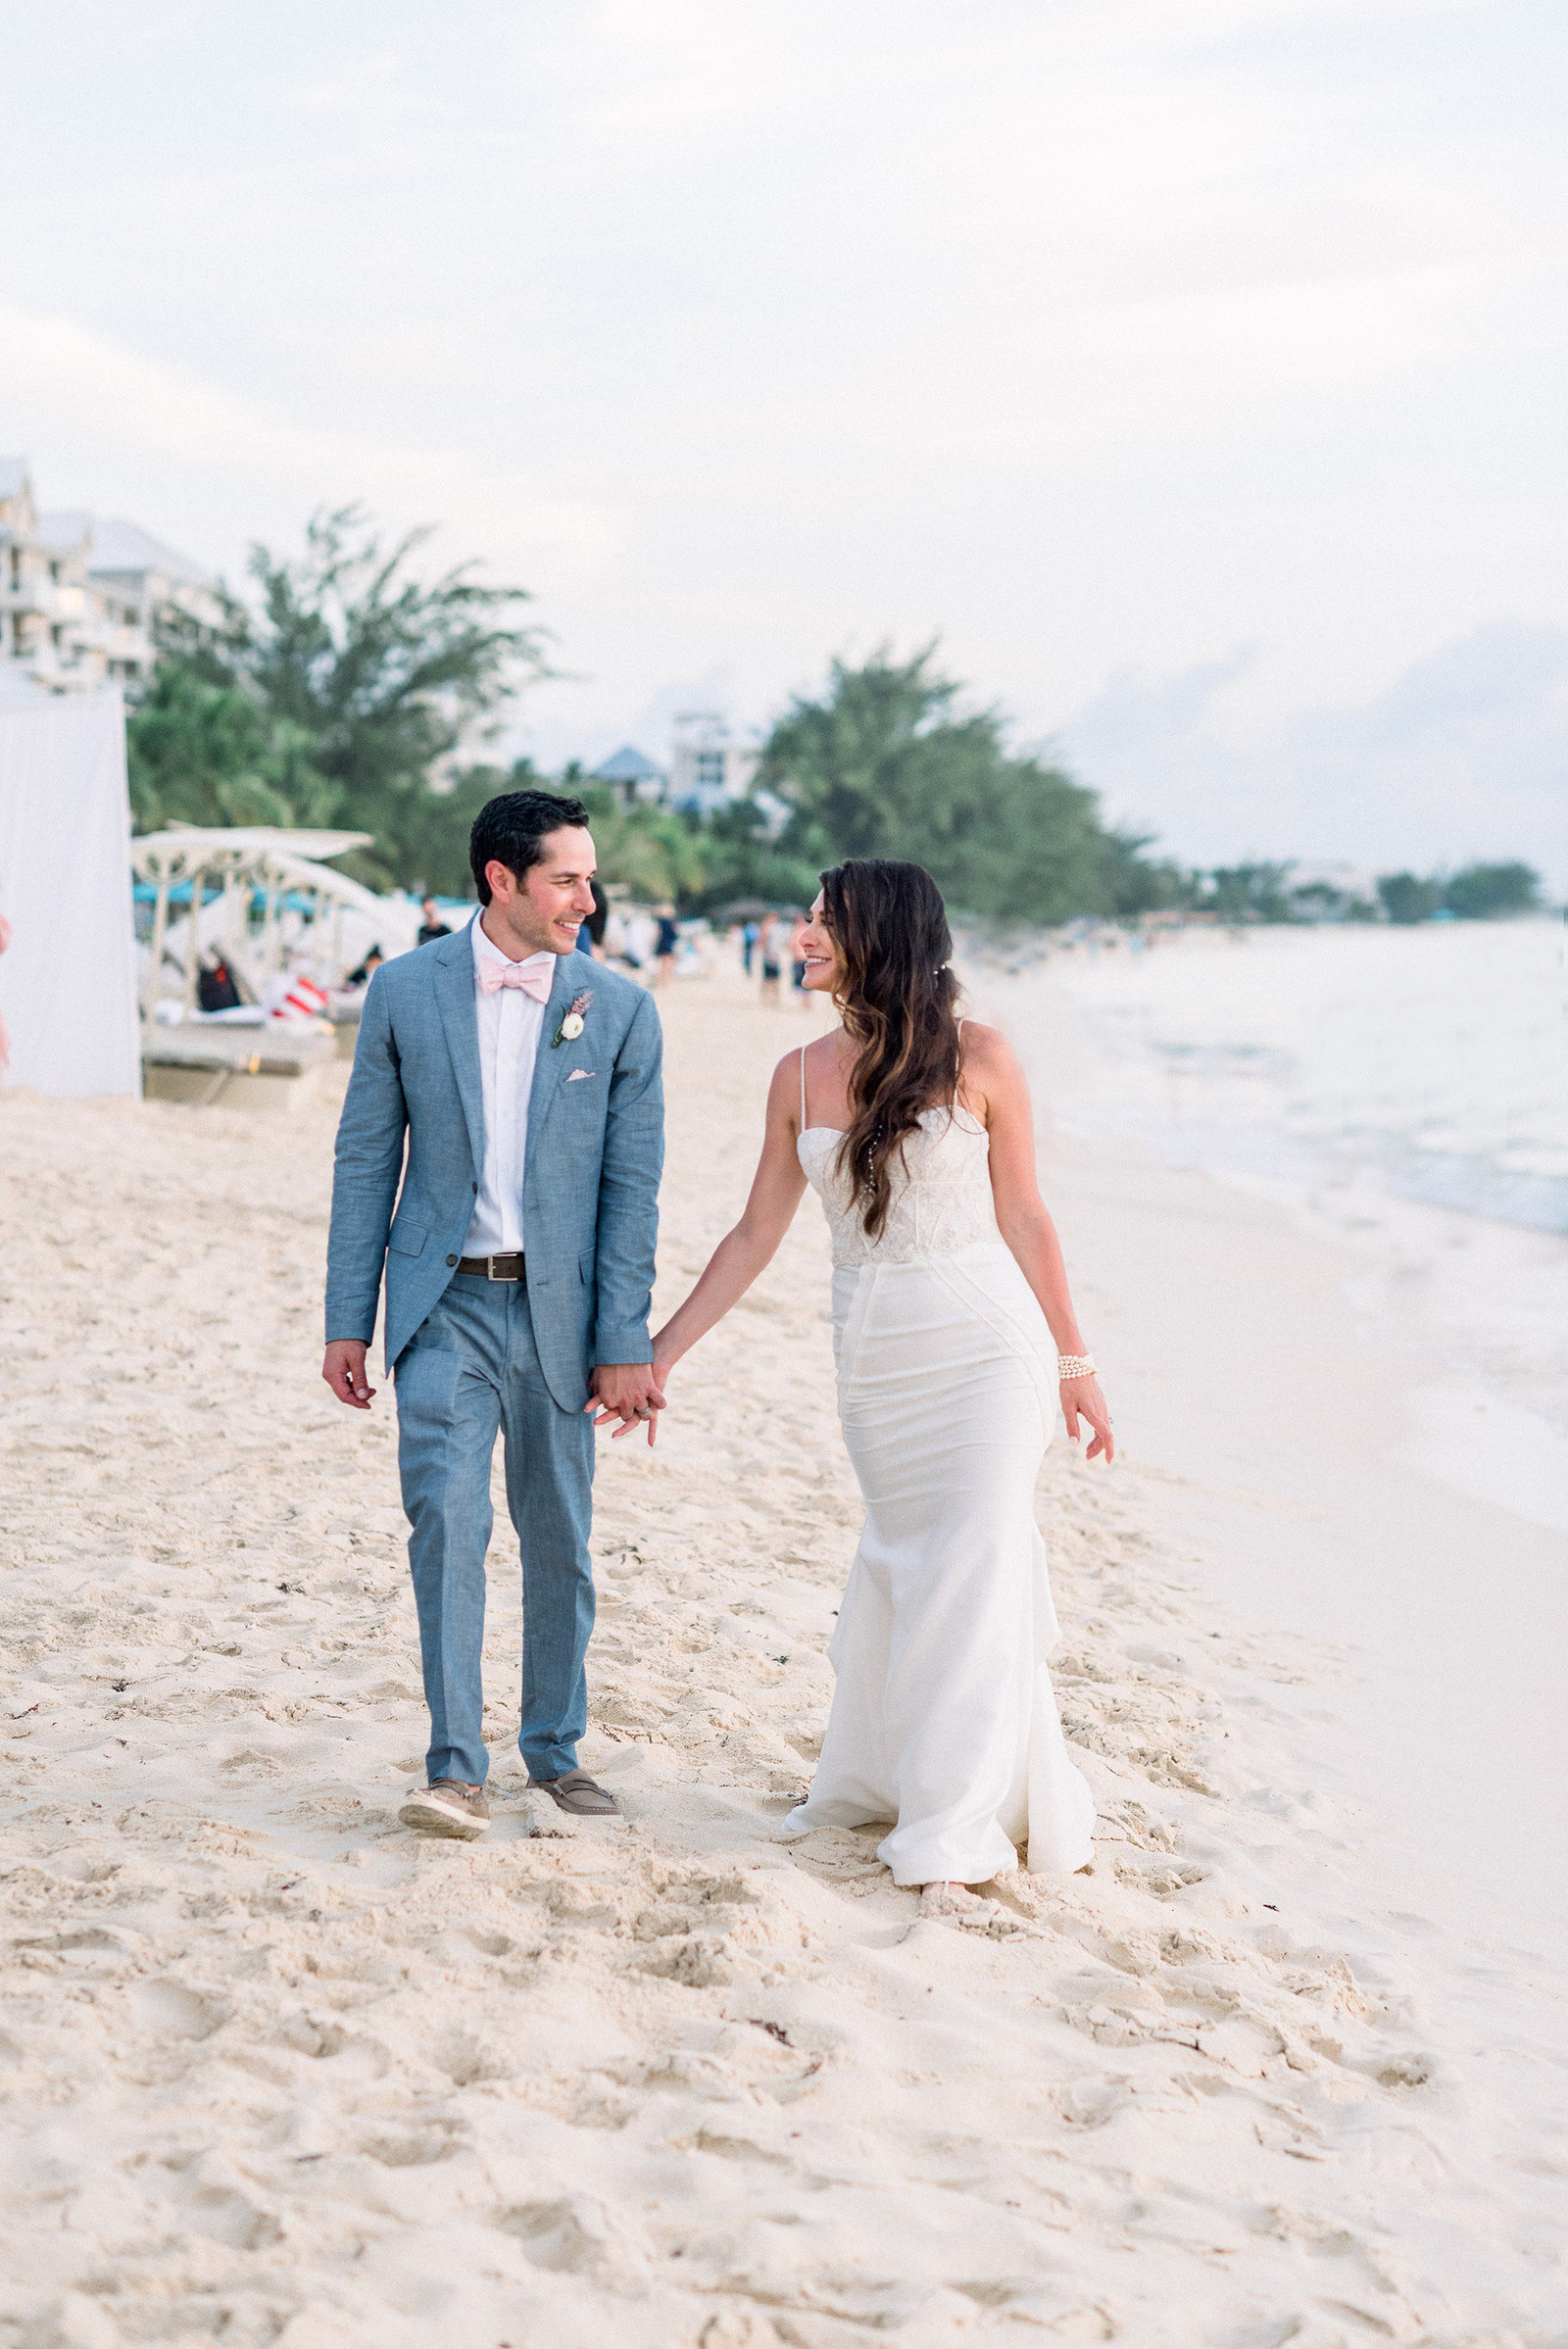 20180512-Pura-Soul-Photo-Ritz-Grand-Cayman-Wedding-111